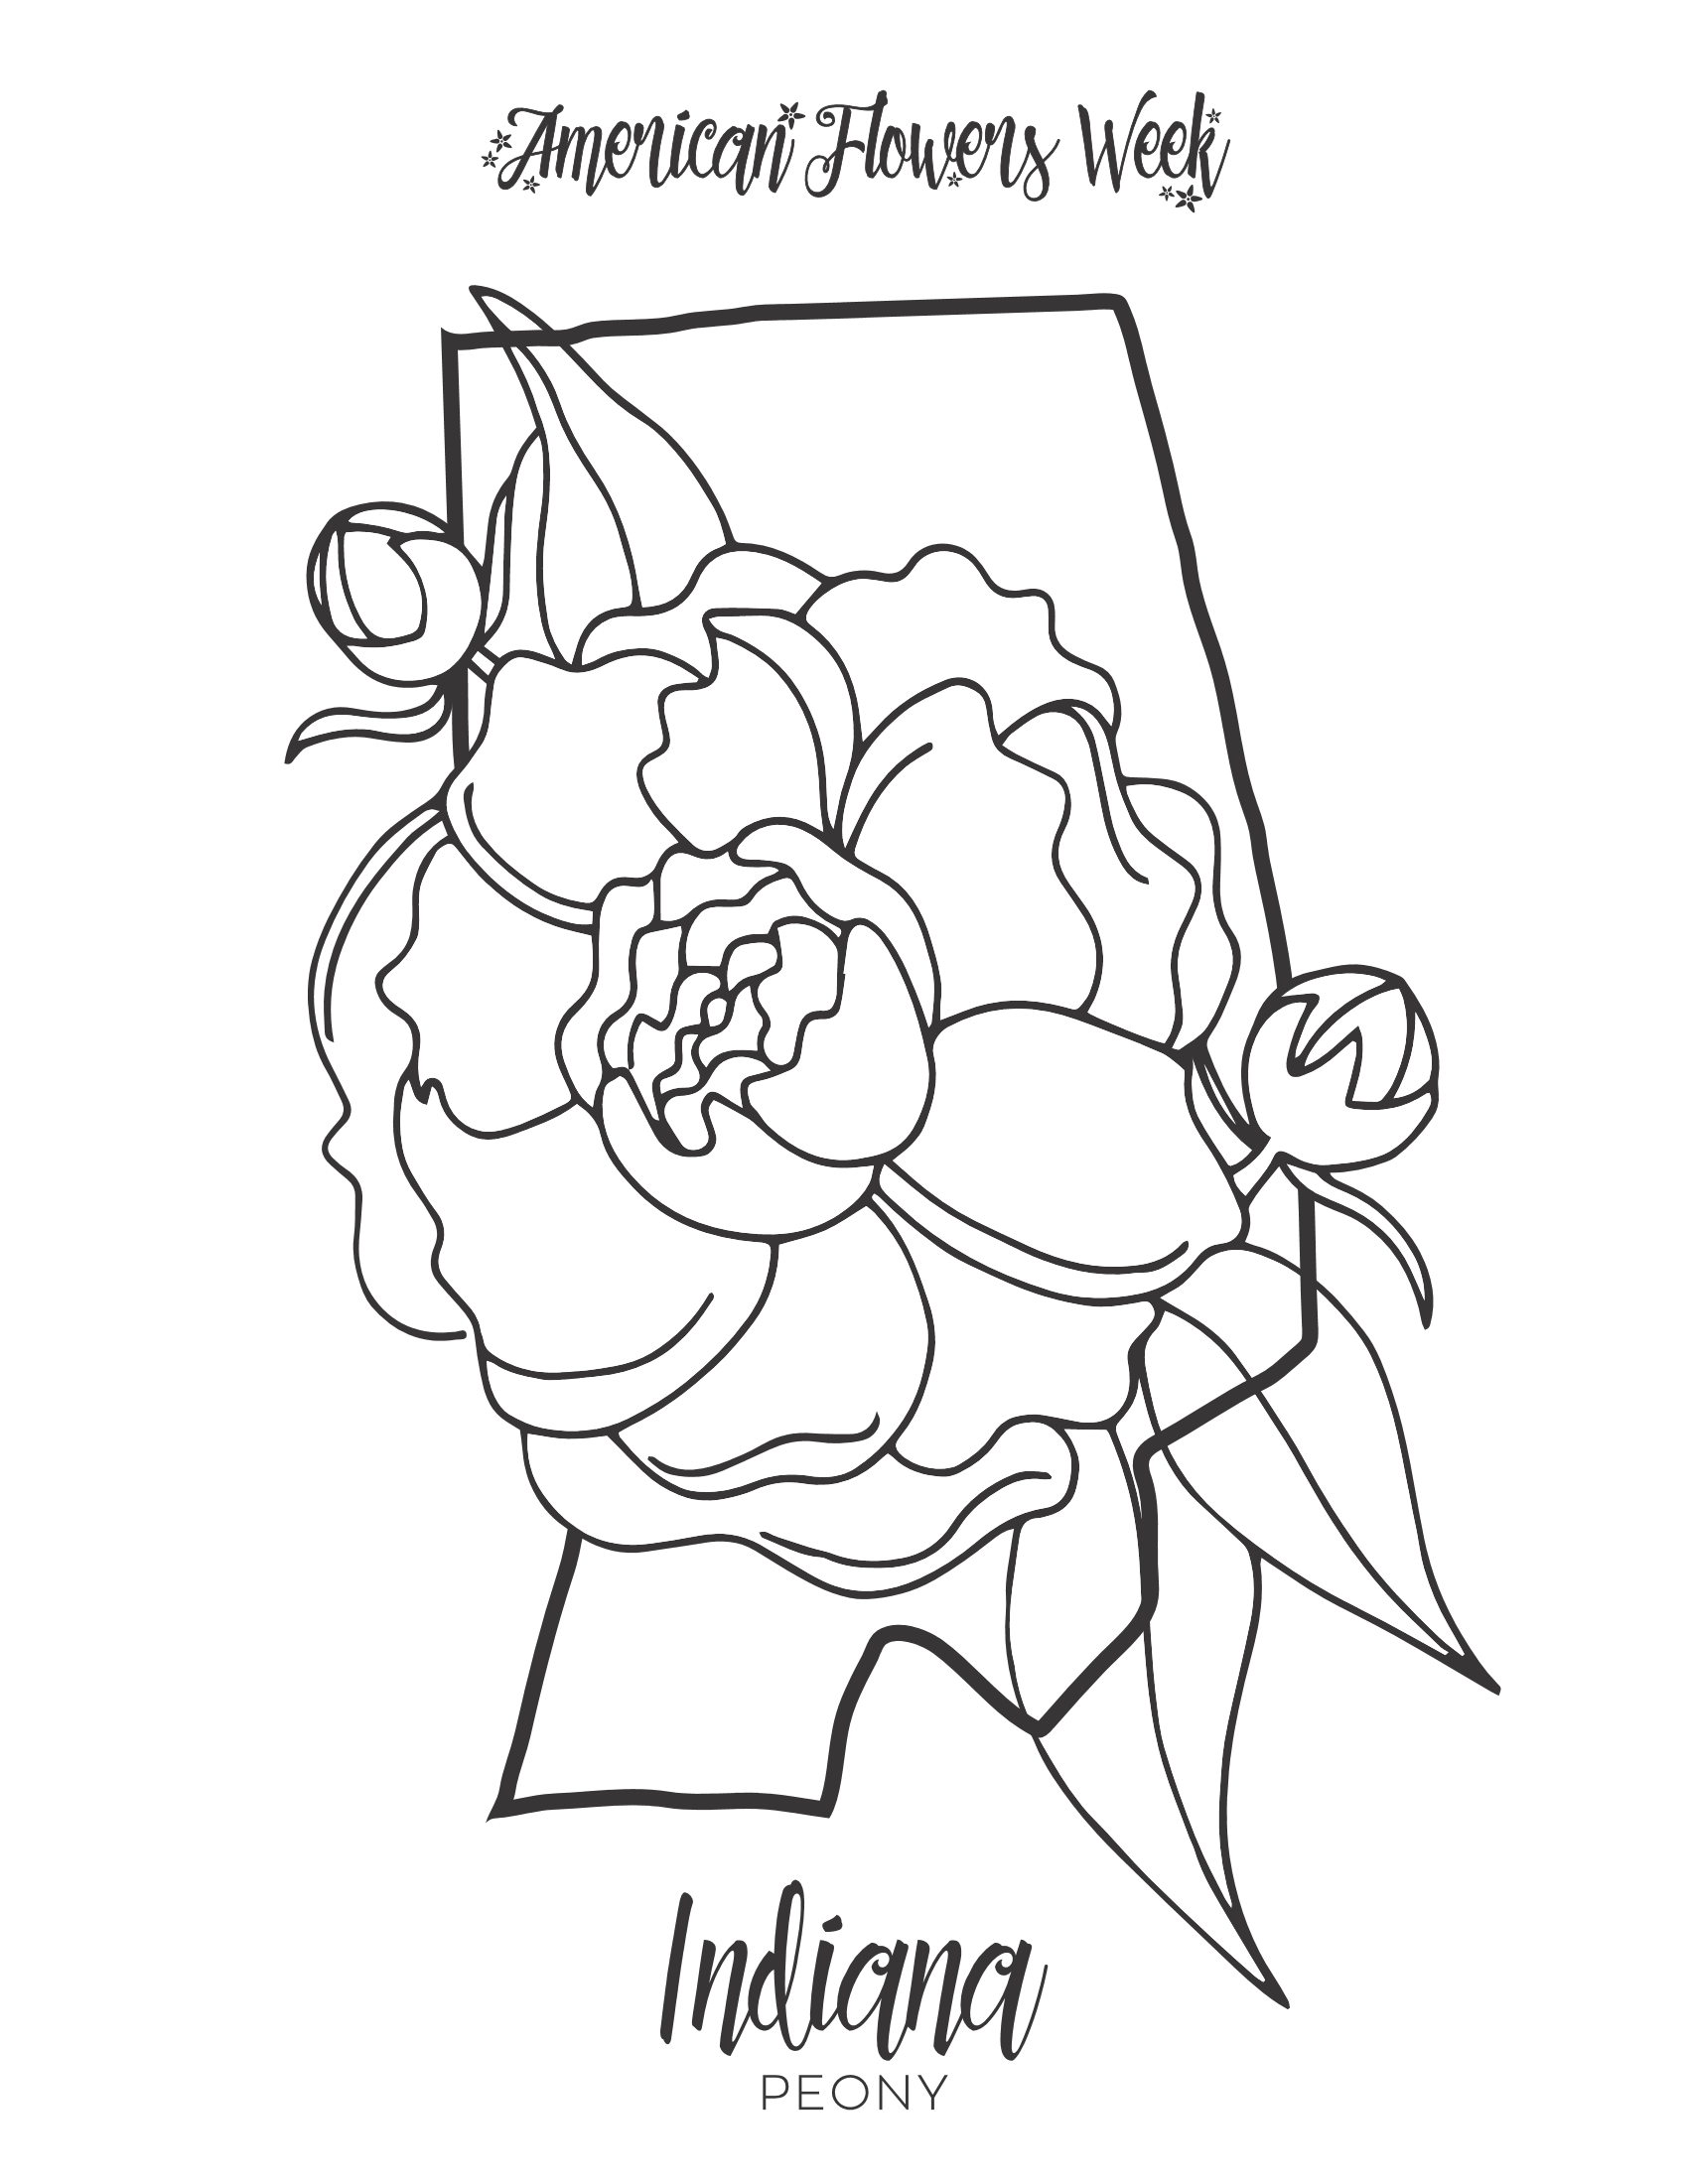 georgia state flower 50 state flowers coloring pages for kids georgia state flower